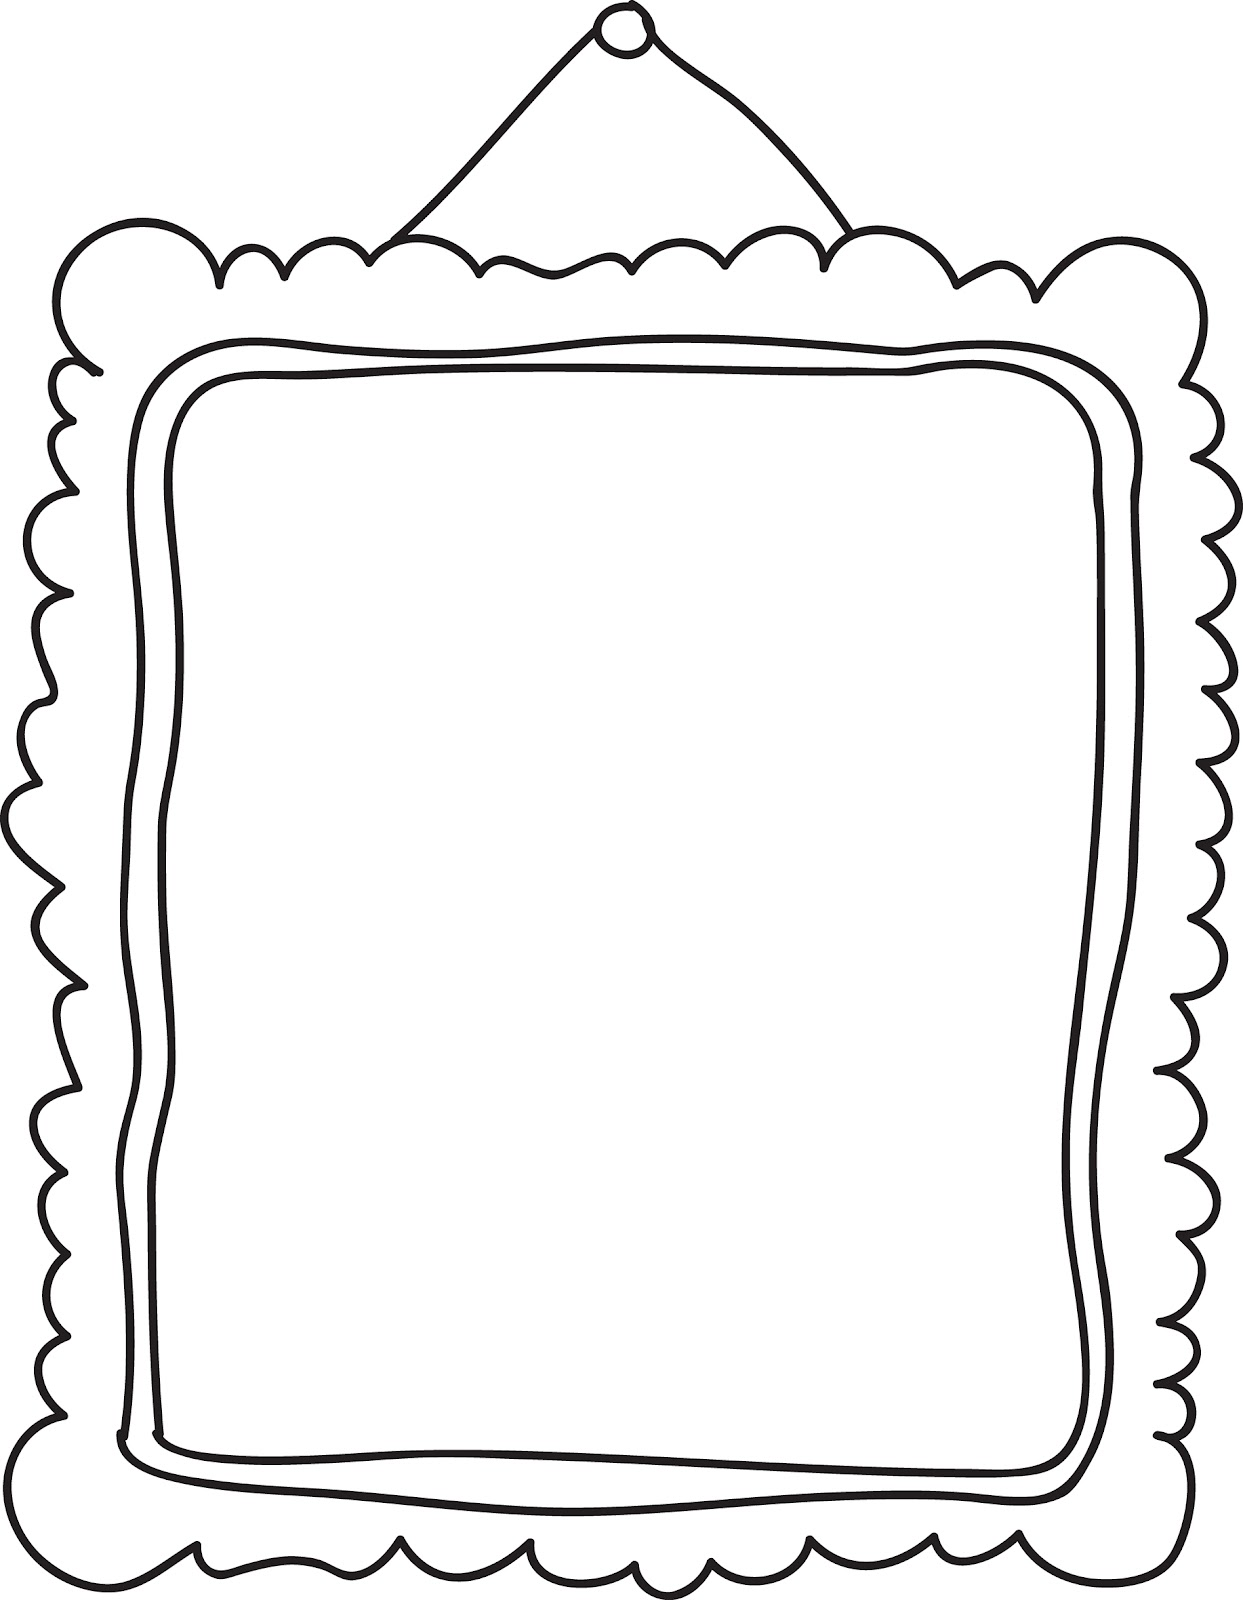 1243x1600 Frame Clip Art Black And White Free Clipart Images